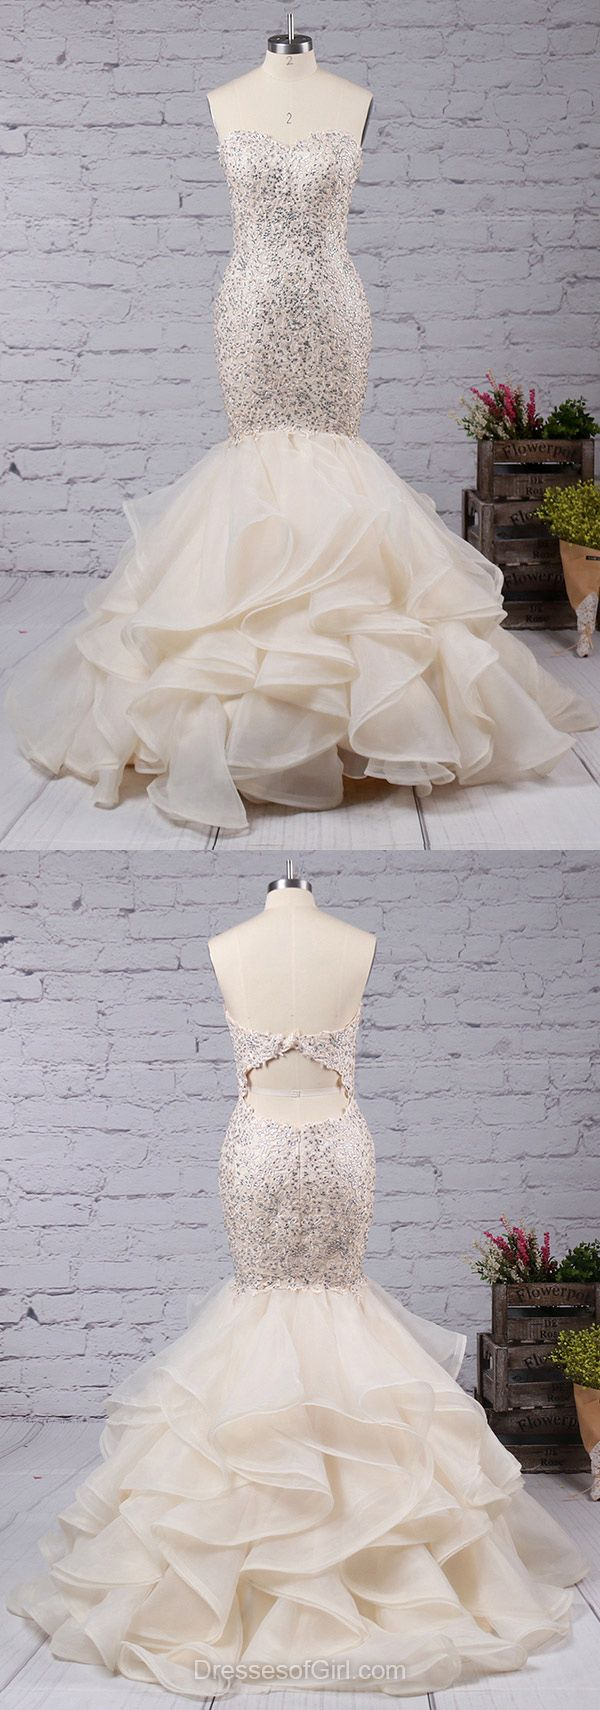 Trumpet/Mermaid Sweetheart Organza Sweep Train with Appliques Lace Prom Dresses